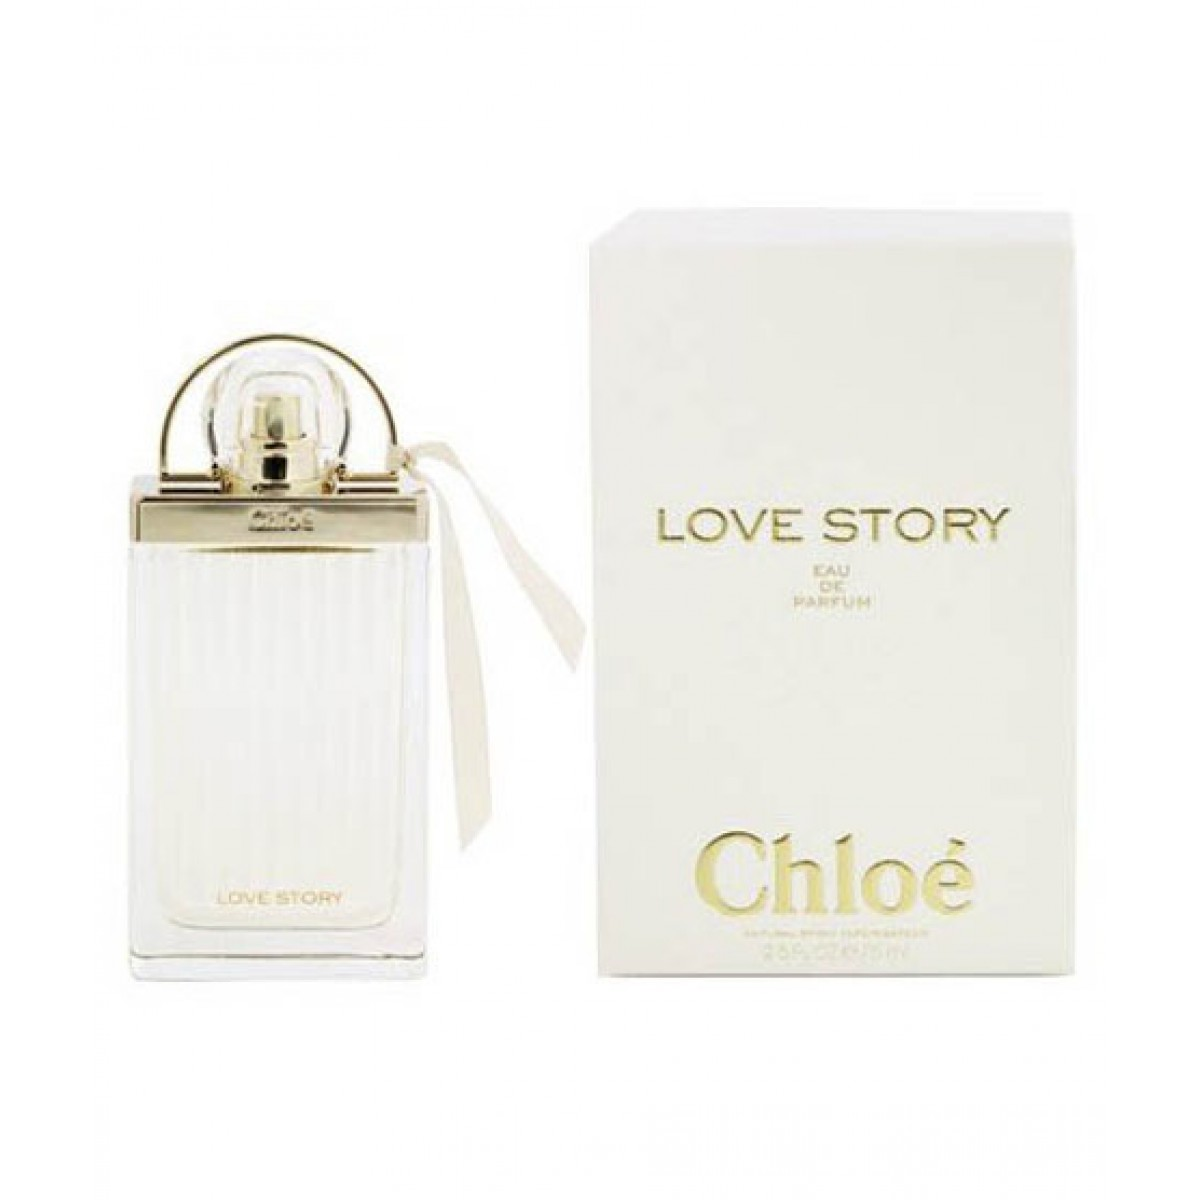 Chloe Love Story Eau De Parfum For Women 75ml